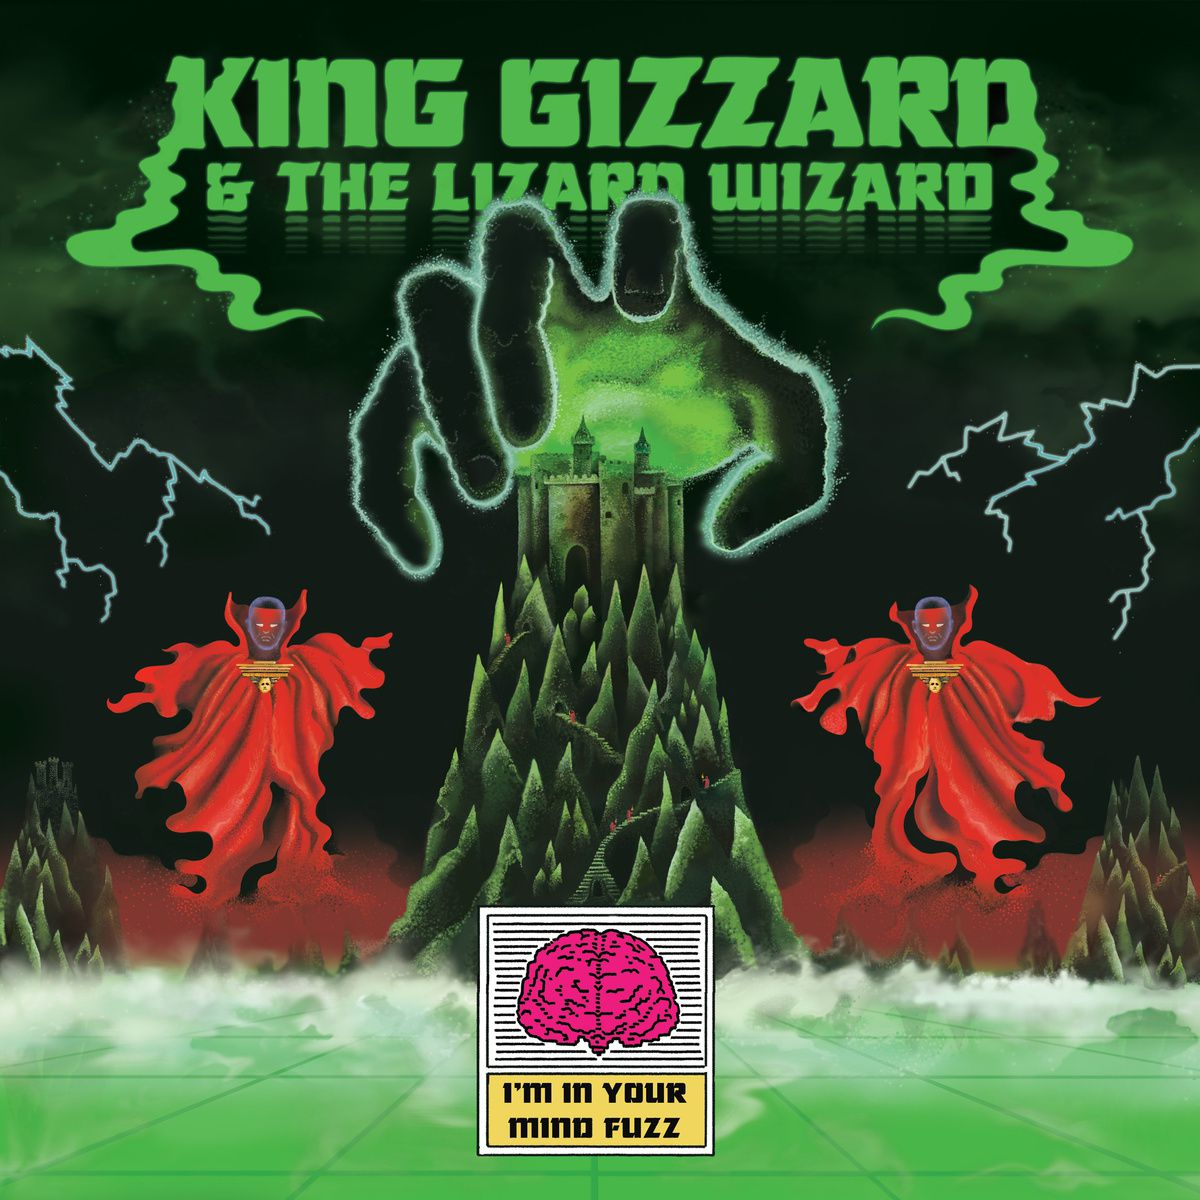 KING GIZZARD AND THE LIZARD WIZARD - I'm in your mind Fuzz (2014)